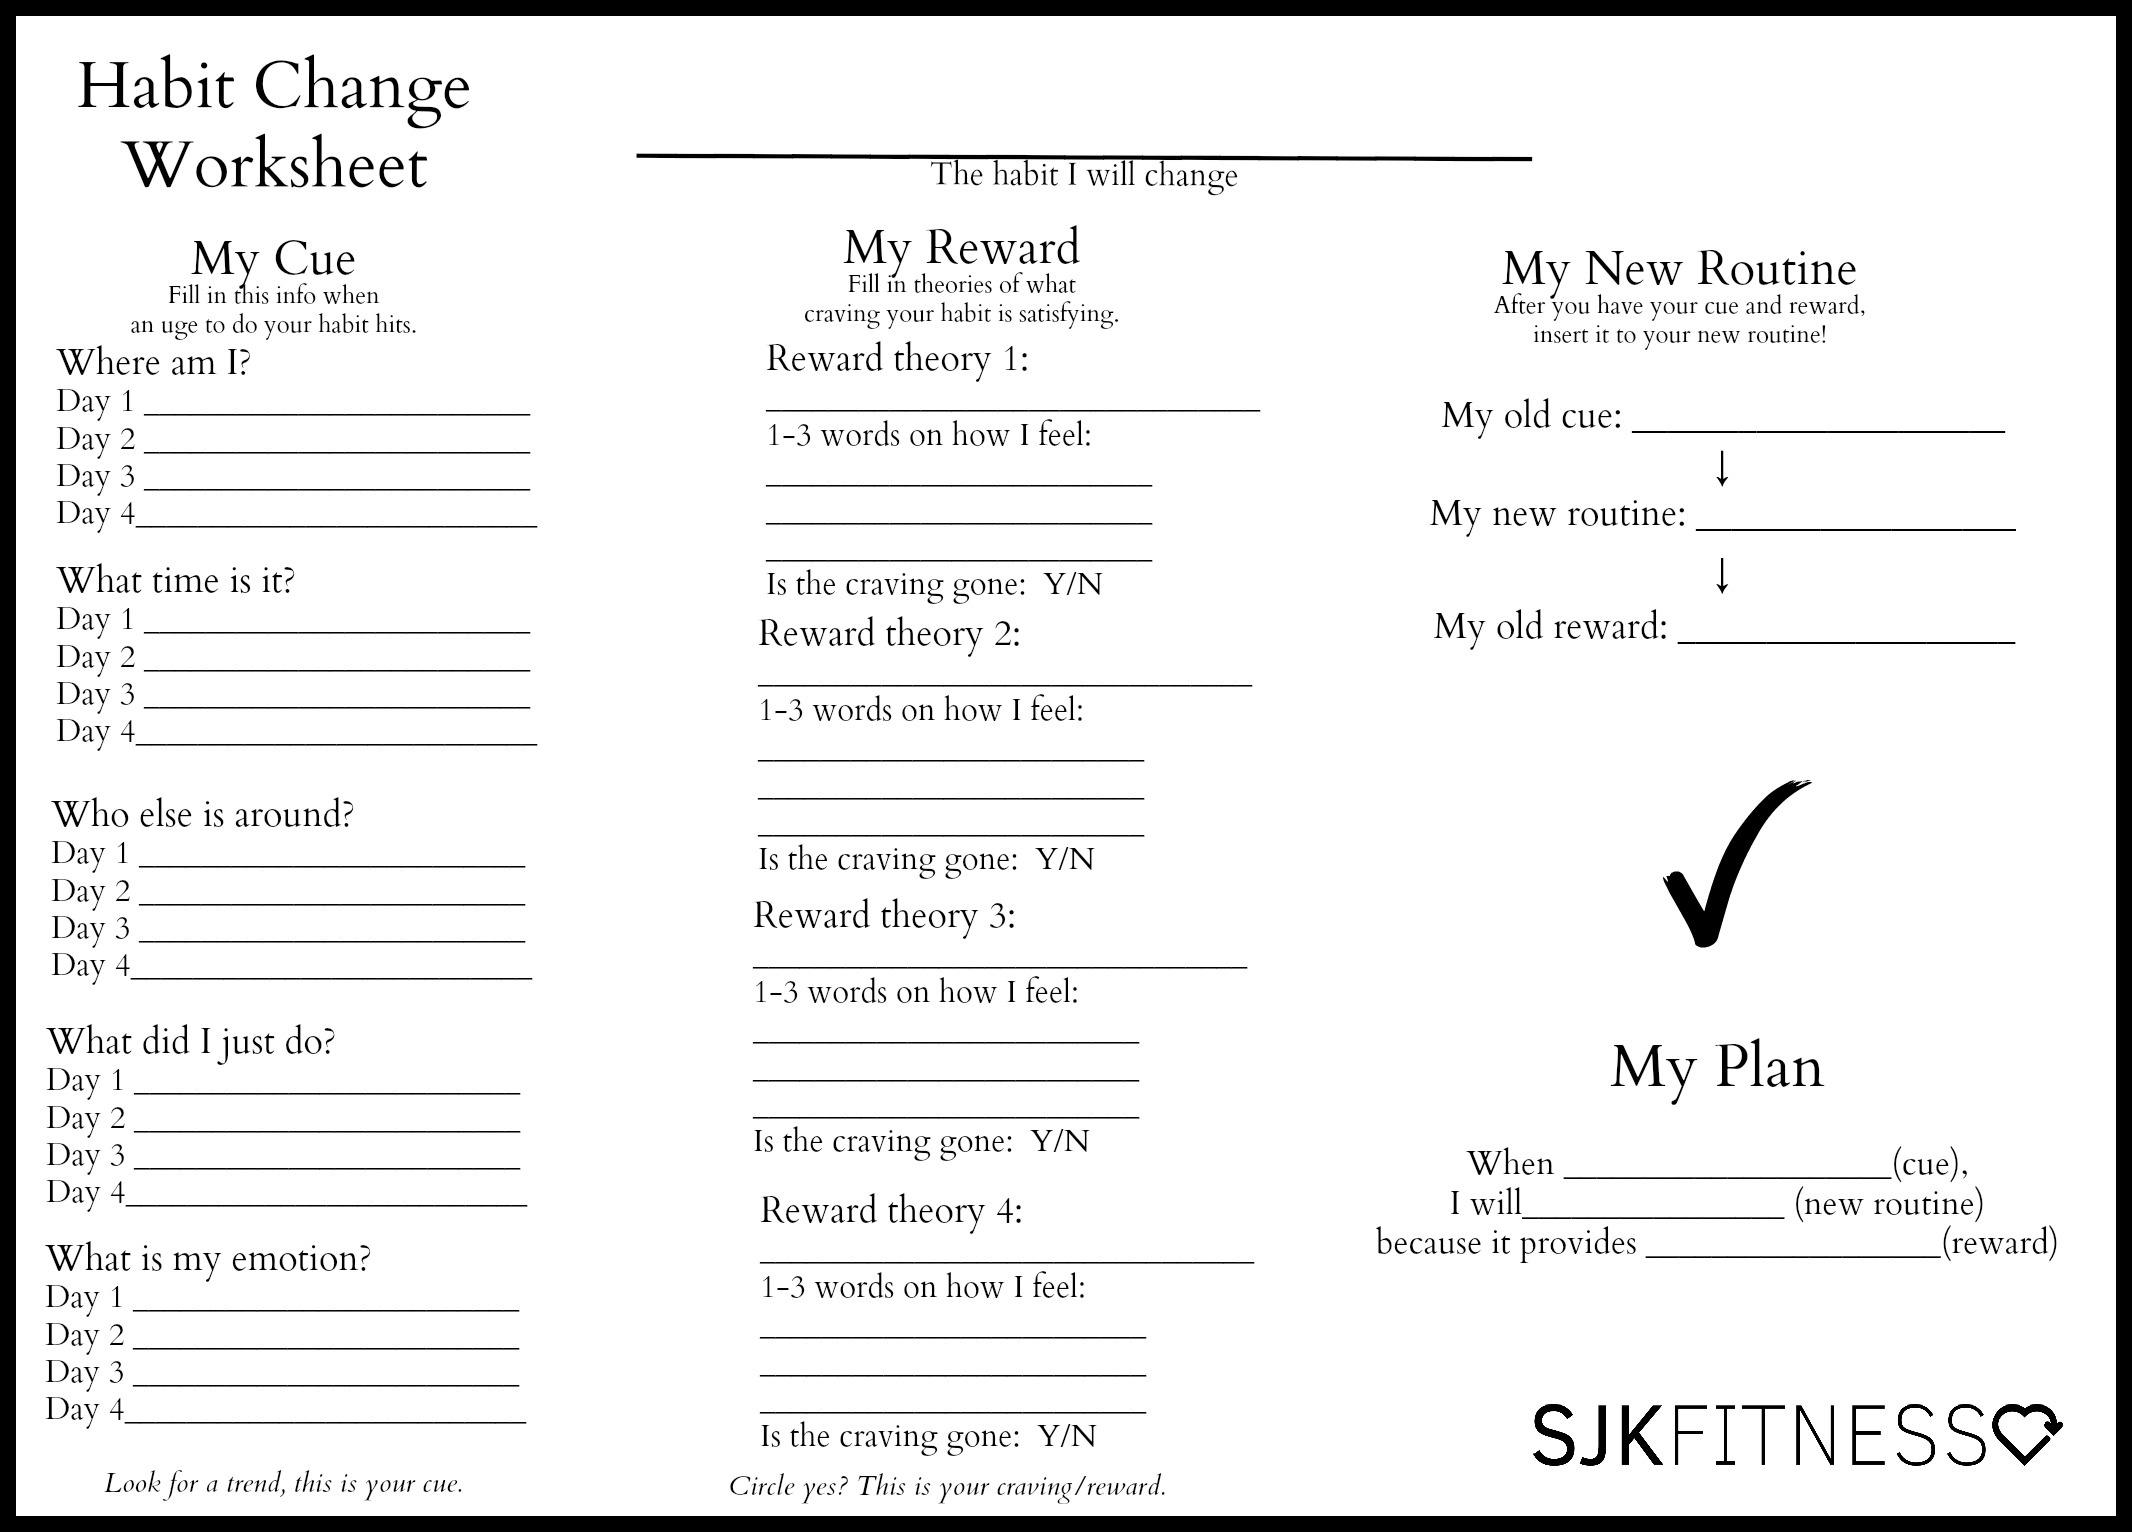 worksheet with steps to change a bad habit